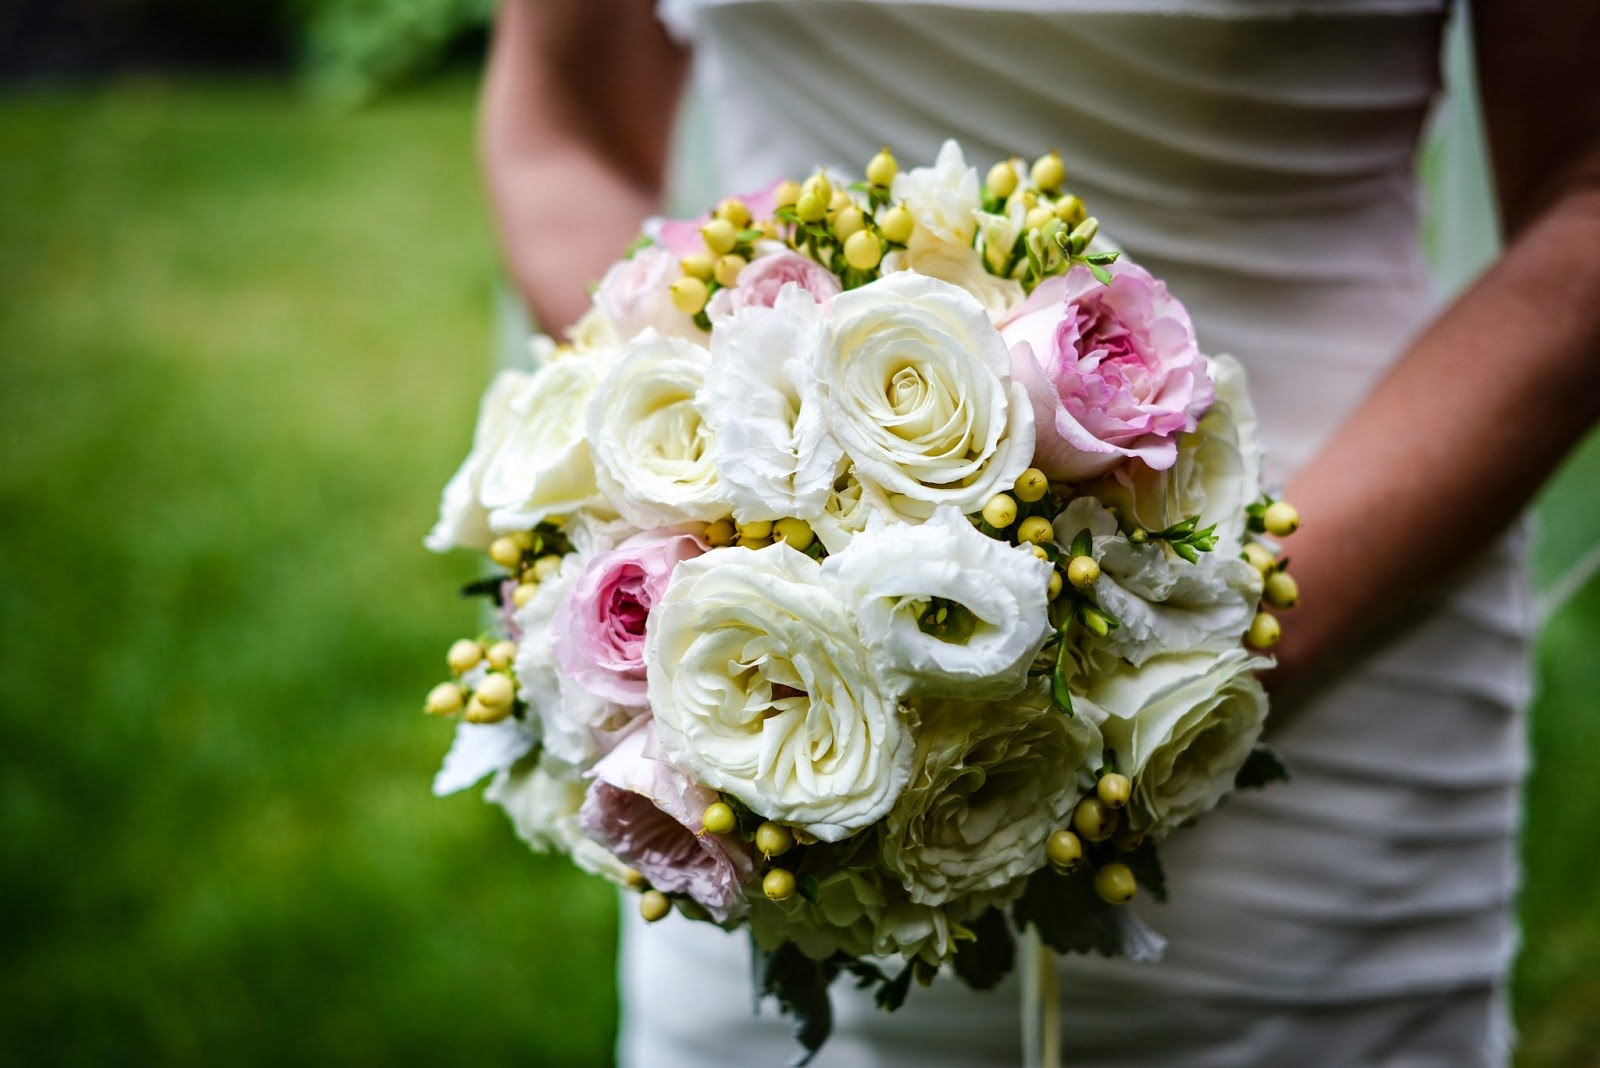 Lake Placid Wedding - The Whiteface Lodge Wedding - Blush and Cream Garden Rose Bridal Bouquet - Upstate NY Wedding - Splendid Stems Floral Designs